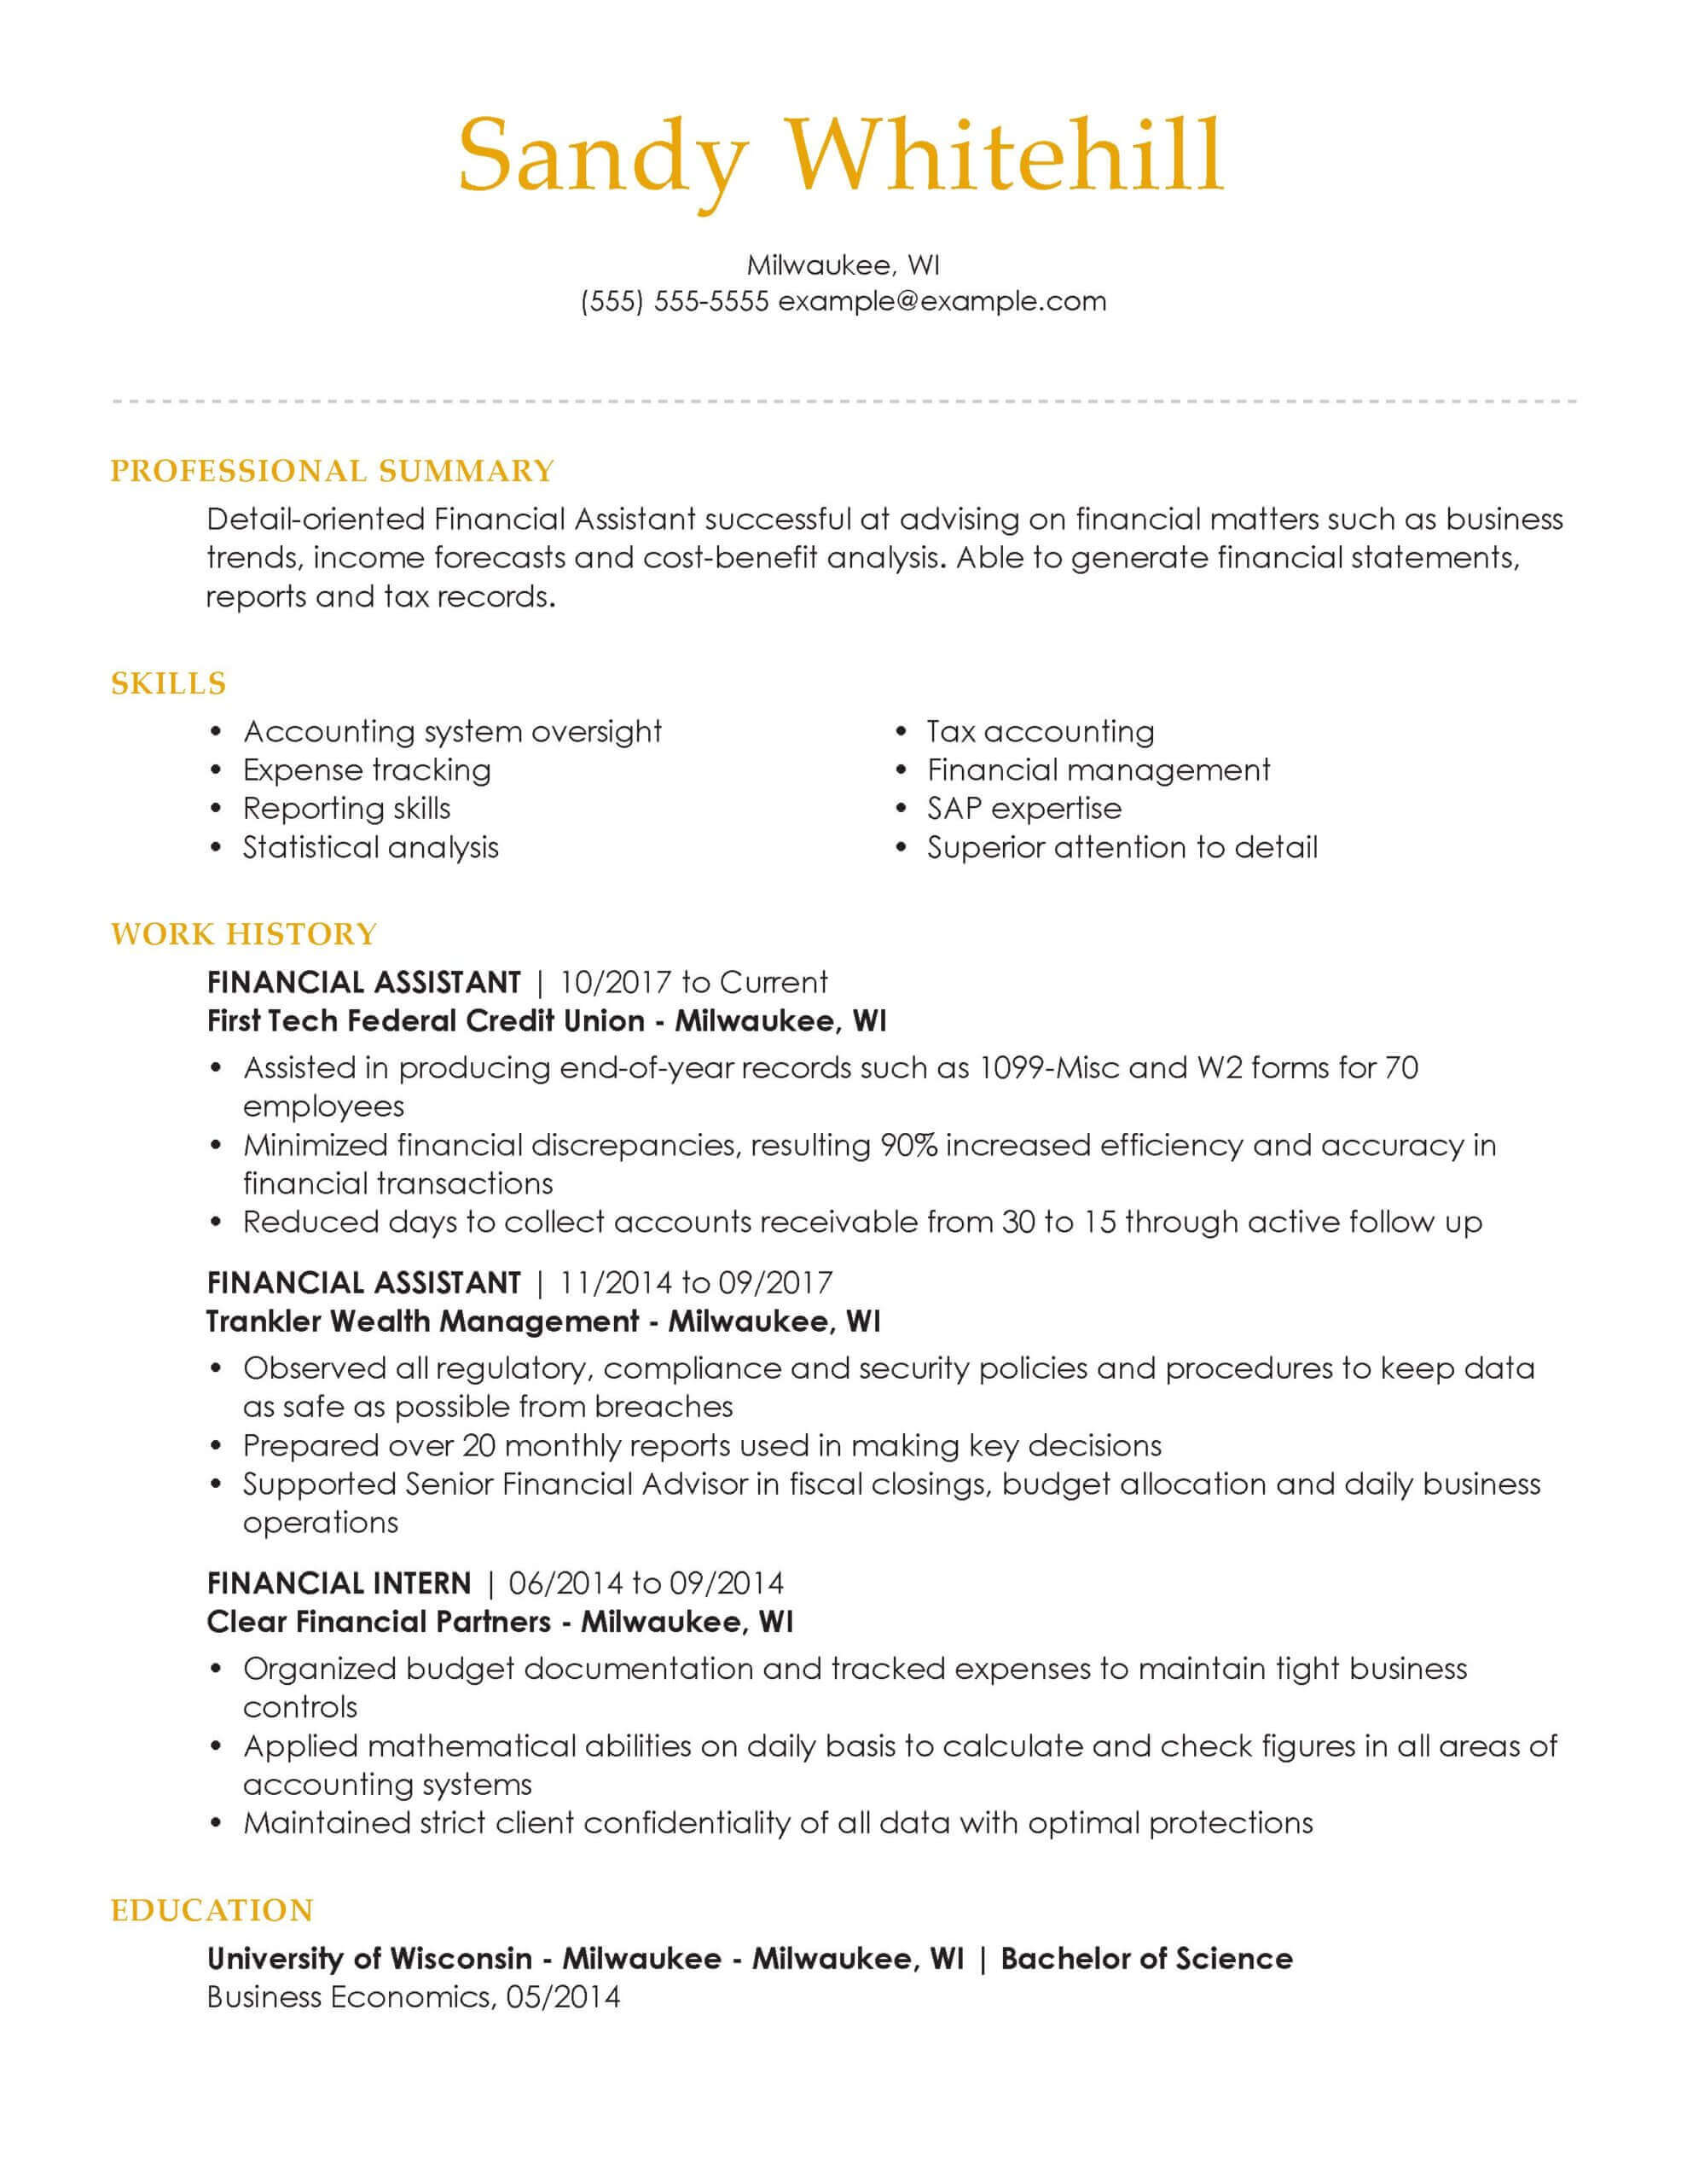 professional banking resume examples livecareer for jobs with experience financial Resume Resume Examples For Jobs With Experience